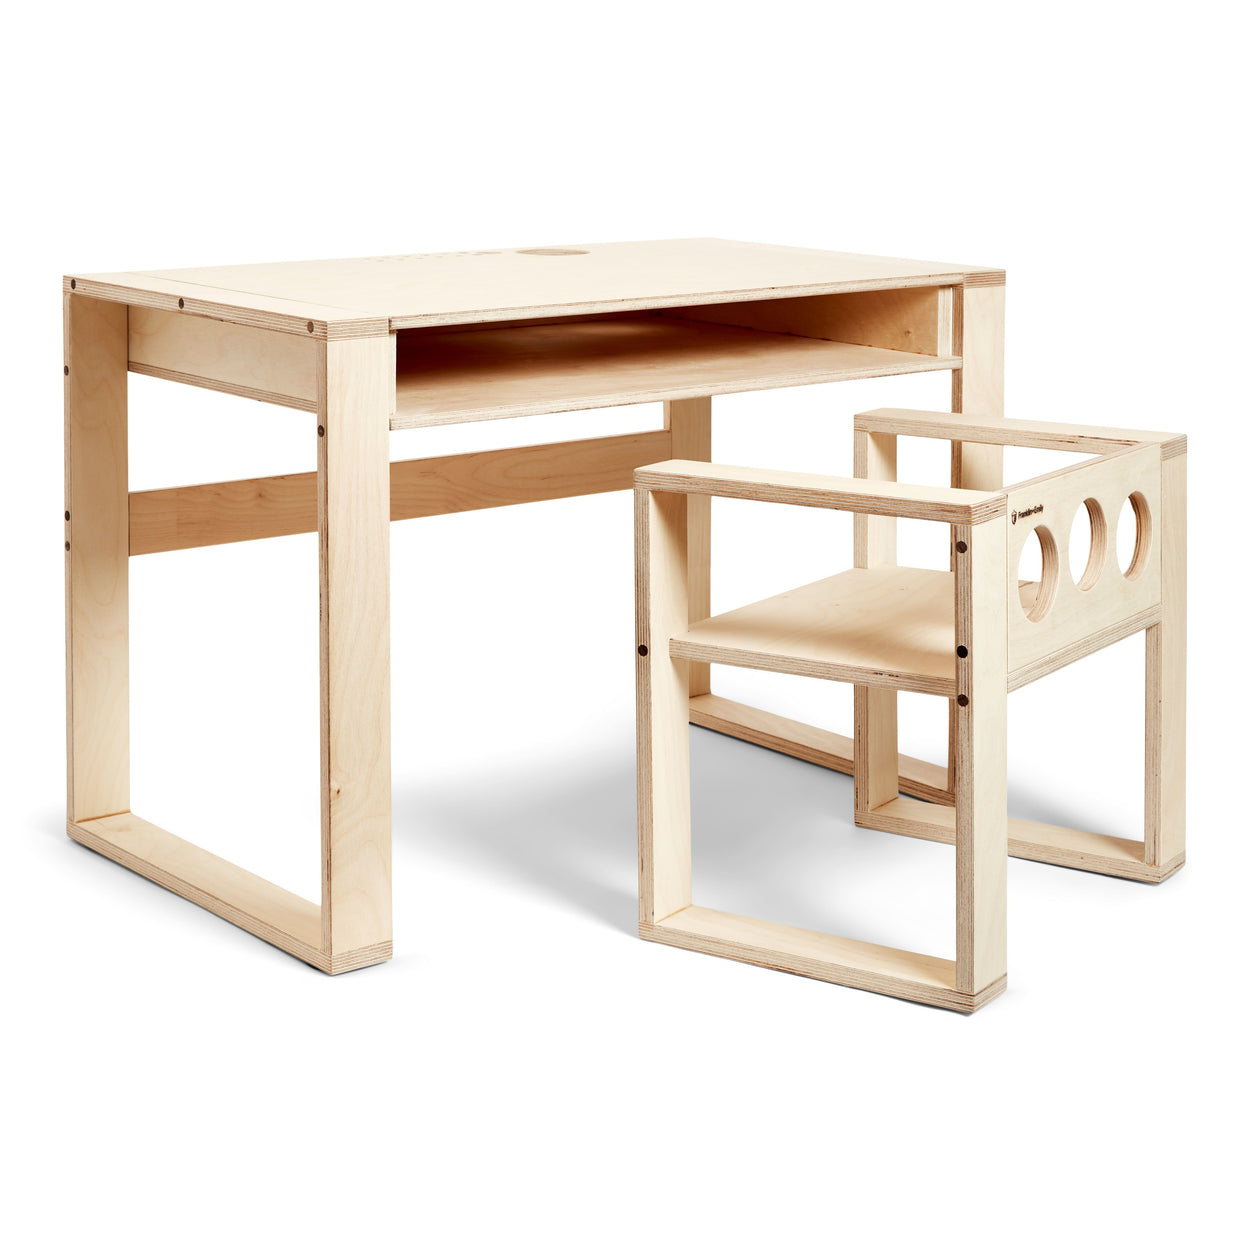 The Kids Desk And Chair Set Franklin Emily Children S Furniture Franklin Emily